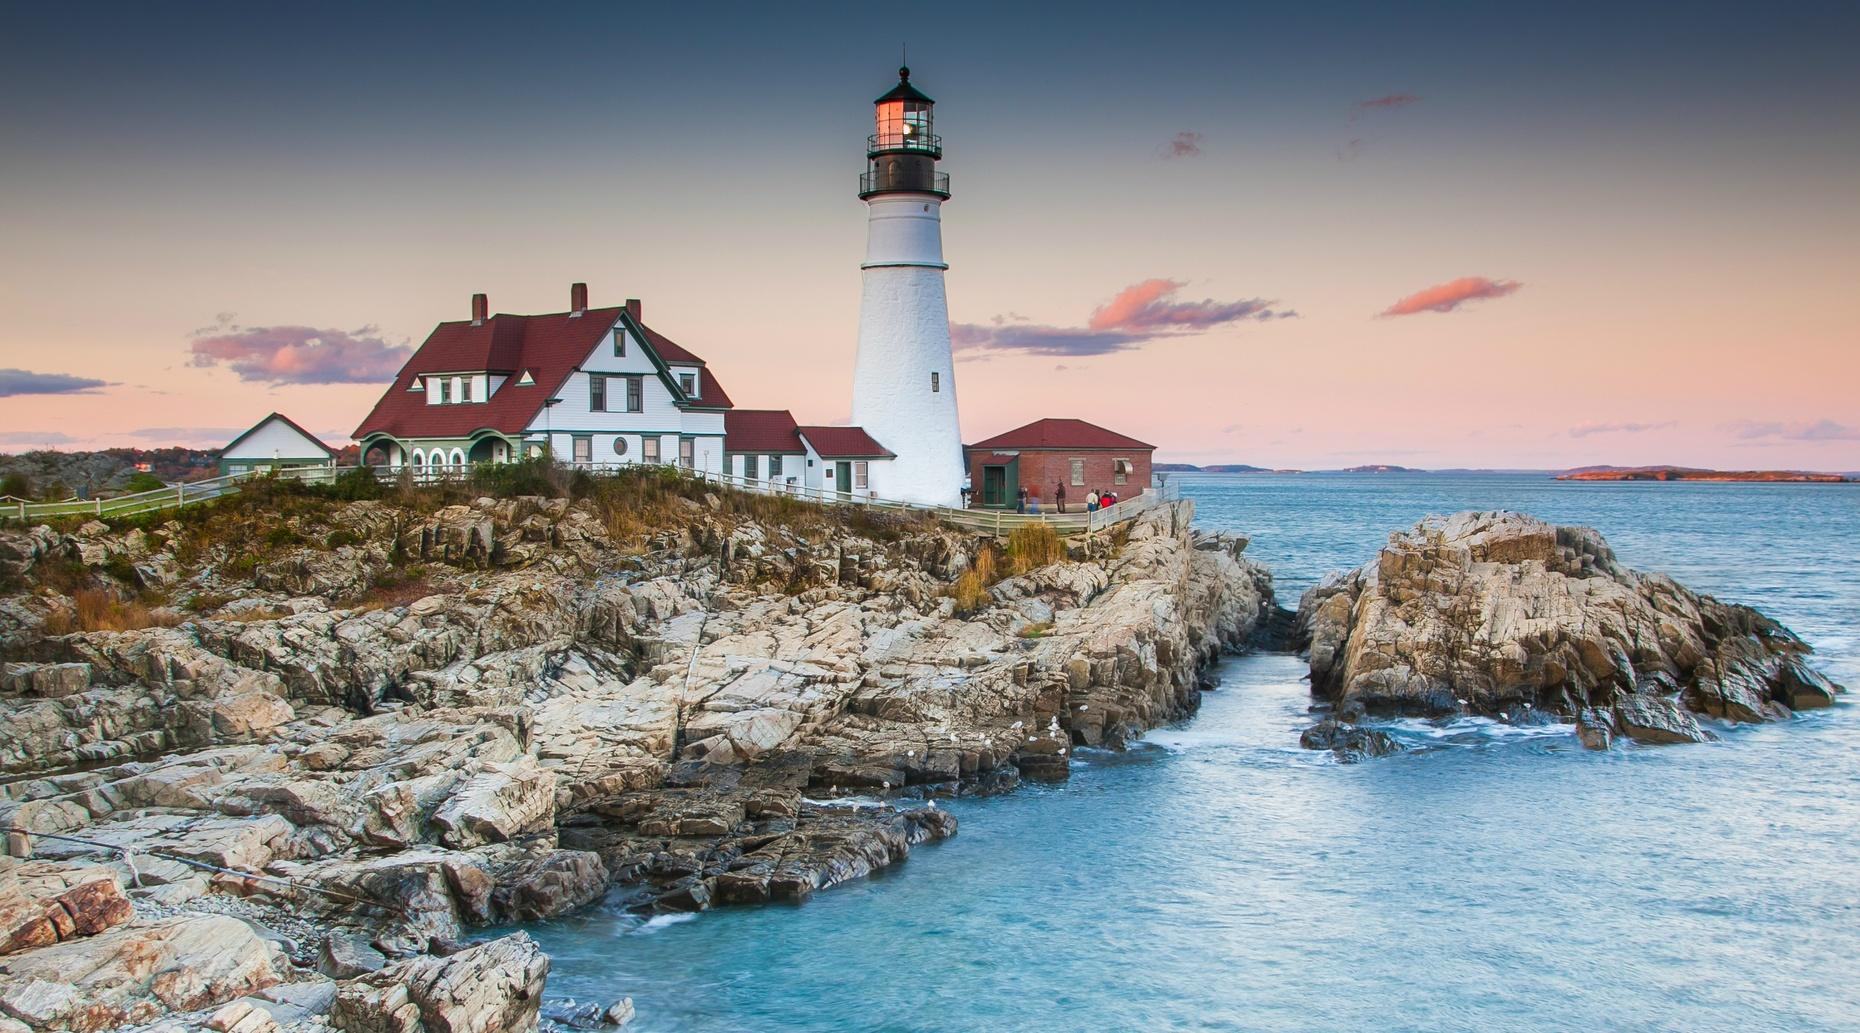 Private Lighthouse & Sightseeing Charter in Portland